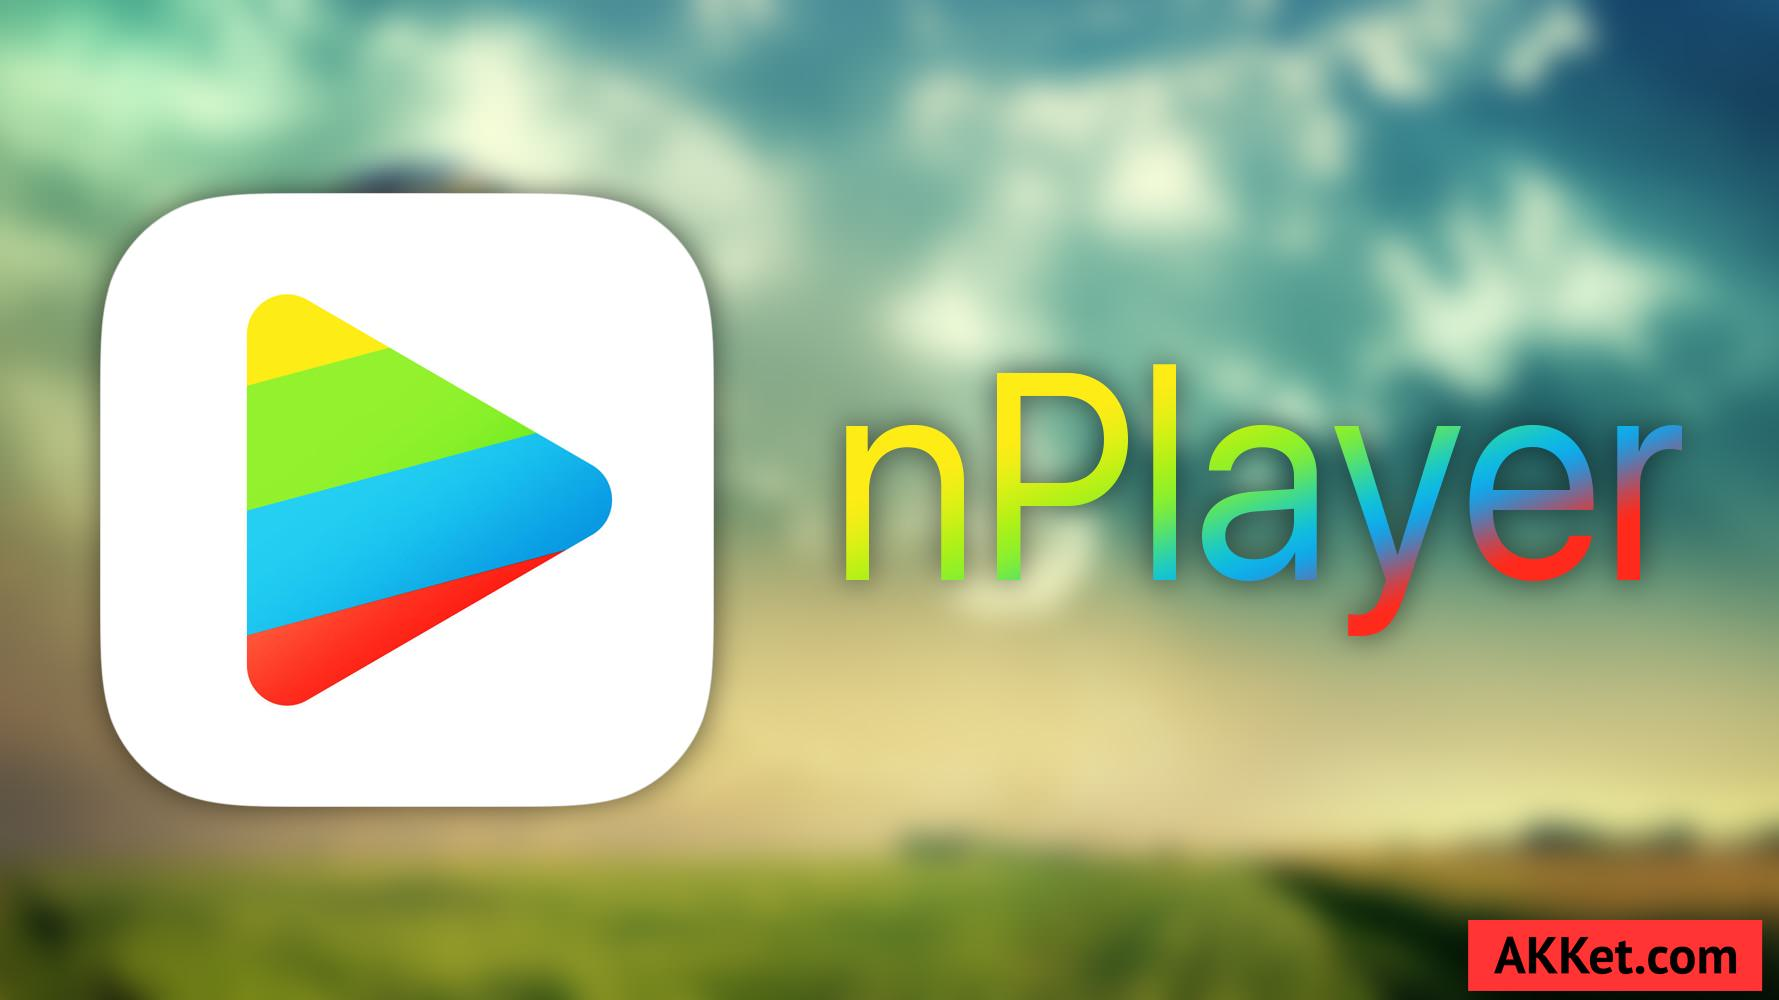 nPlayer best videoplayer iOS App Store iPhone iPad review 1